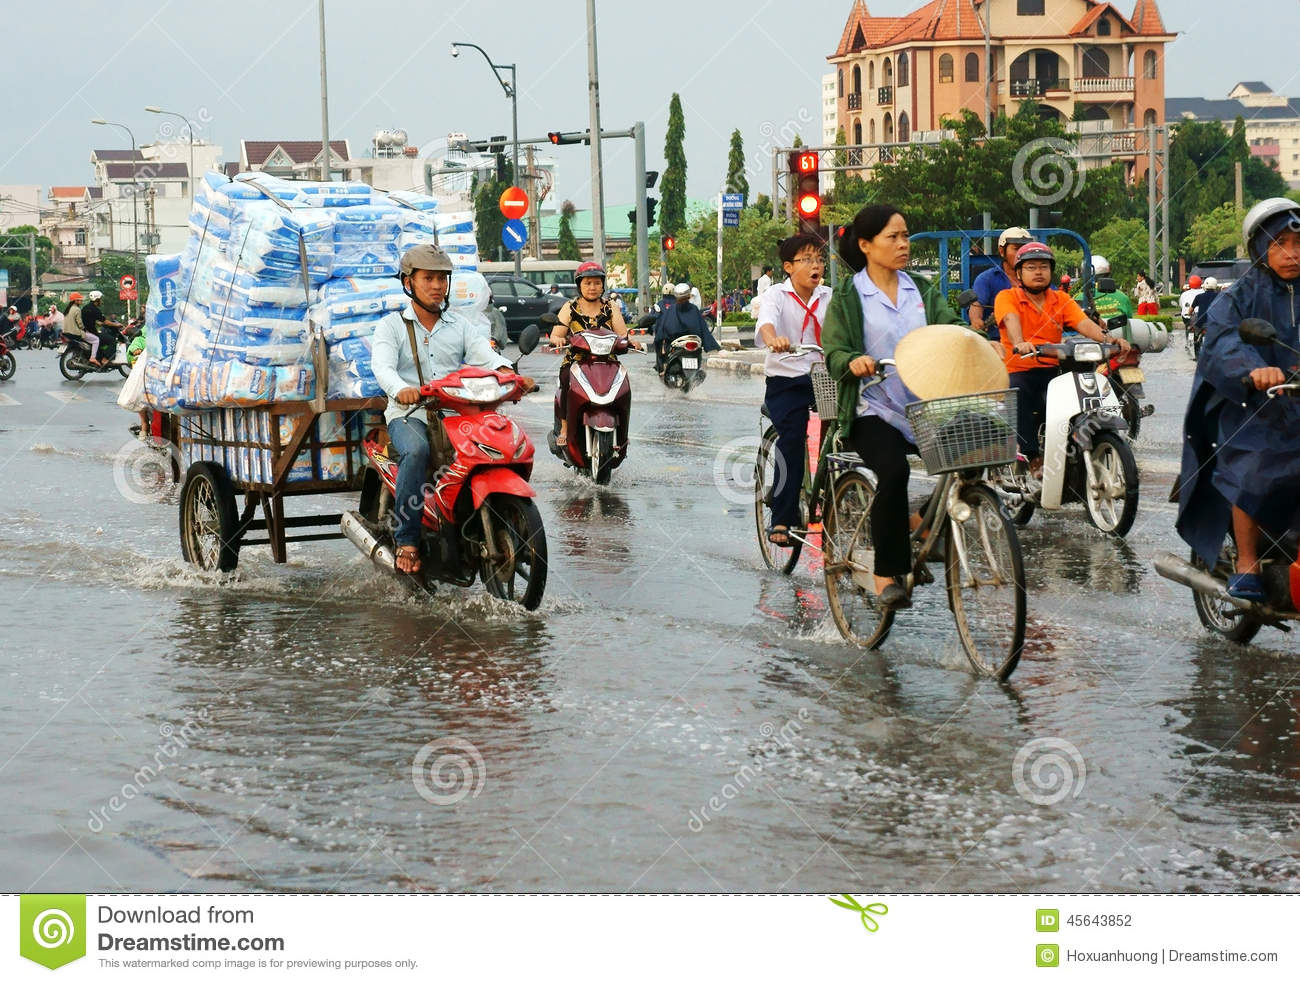 Ho Chi Minh-stad, lood getijde, overstroomd water